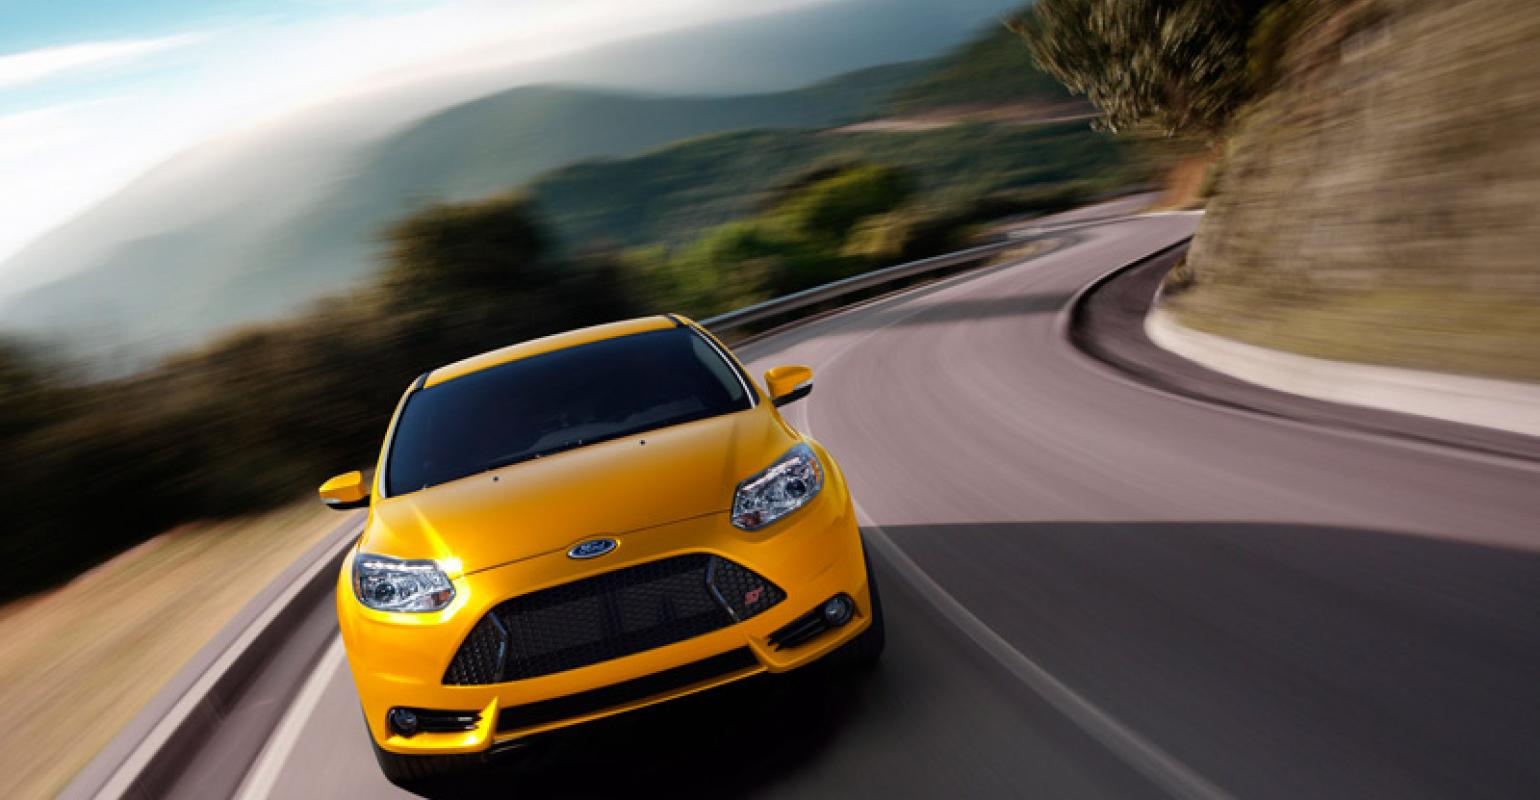 Ford Focus ST to Get 'Overboost' Feature | WardsAuto